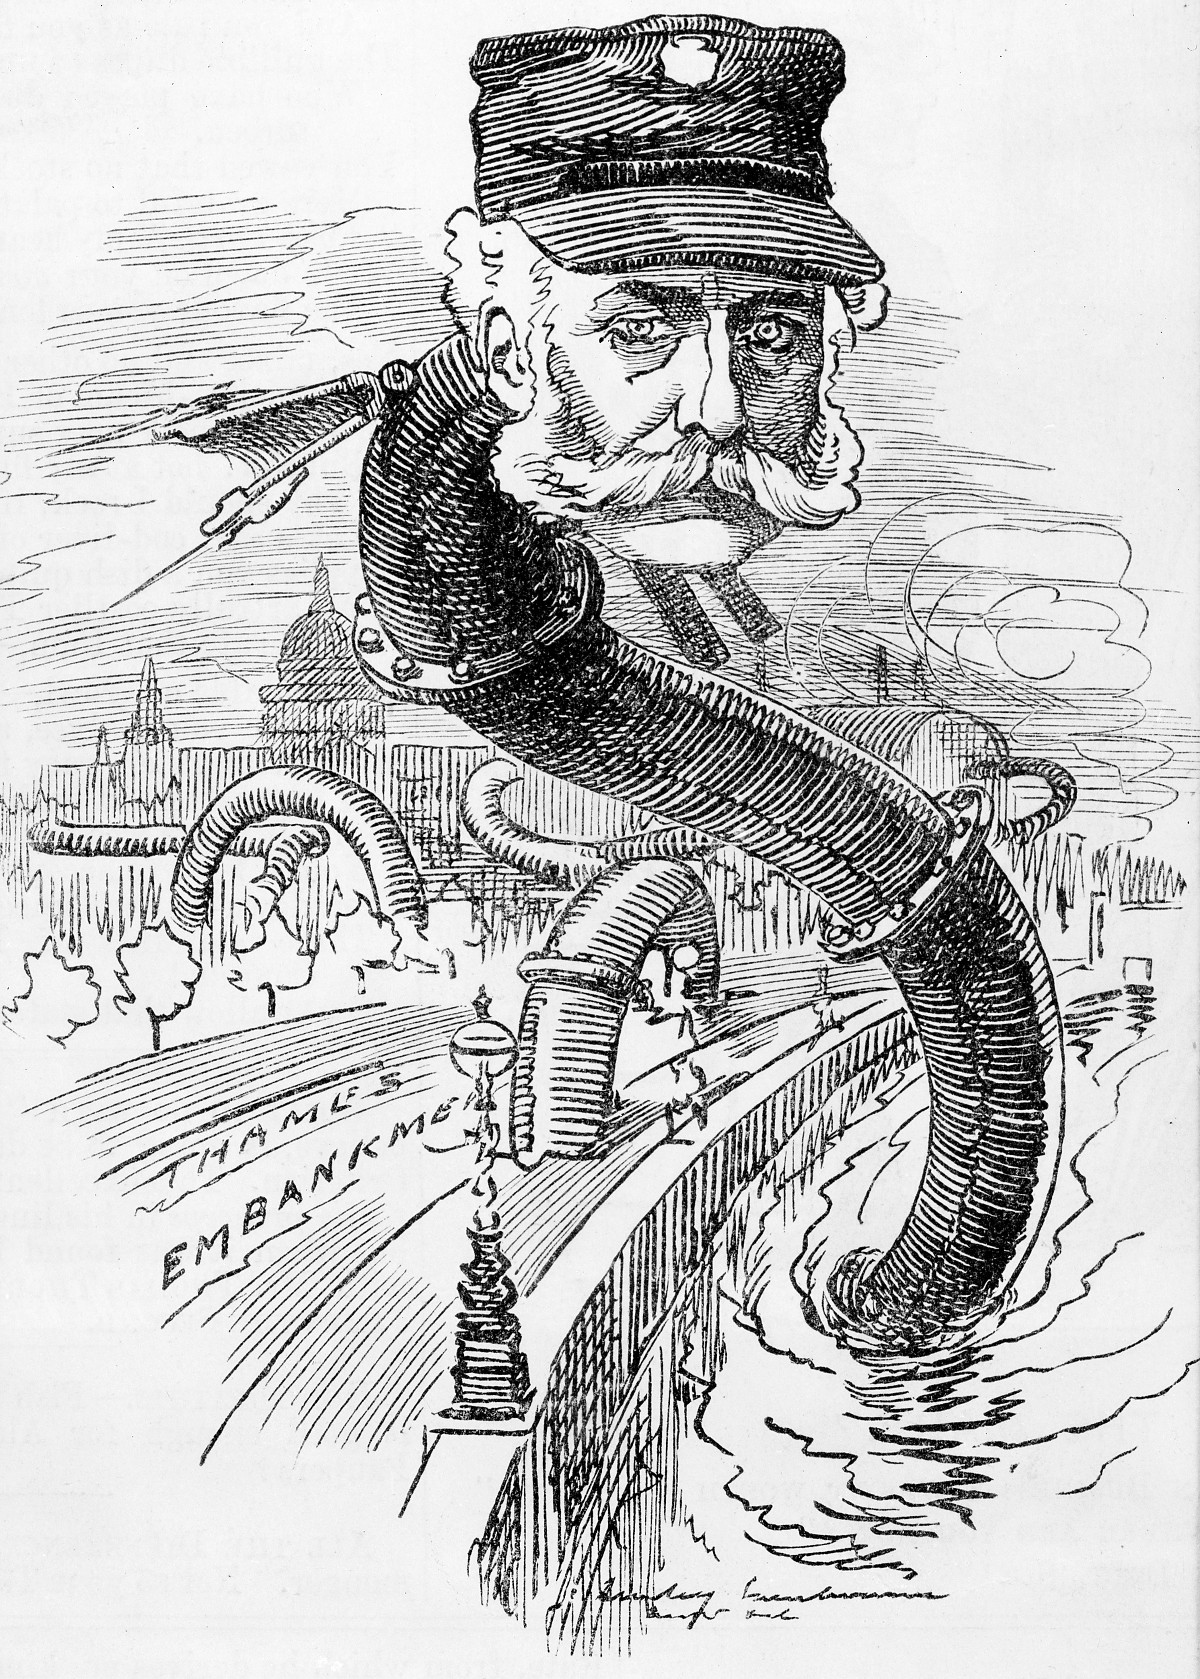 Bazalgette as the 'Sewer Snake', Punch, 1883